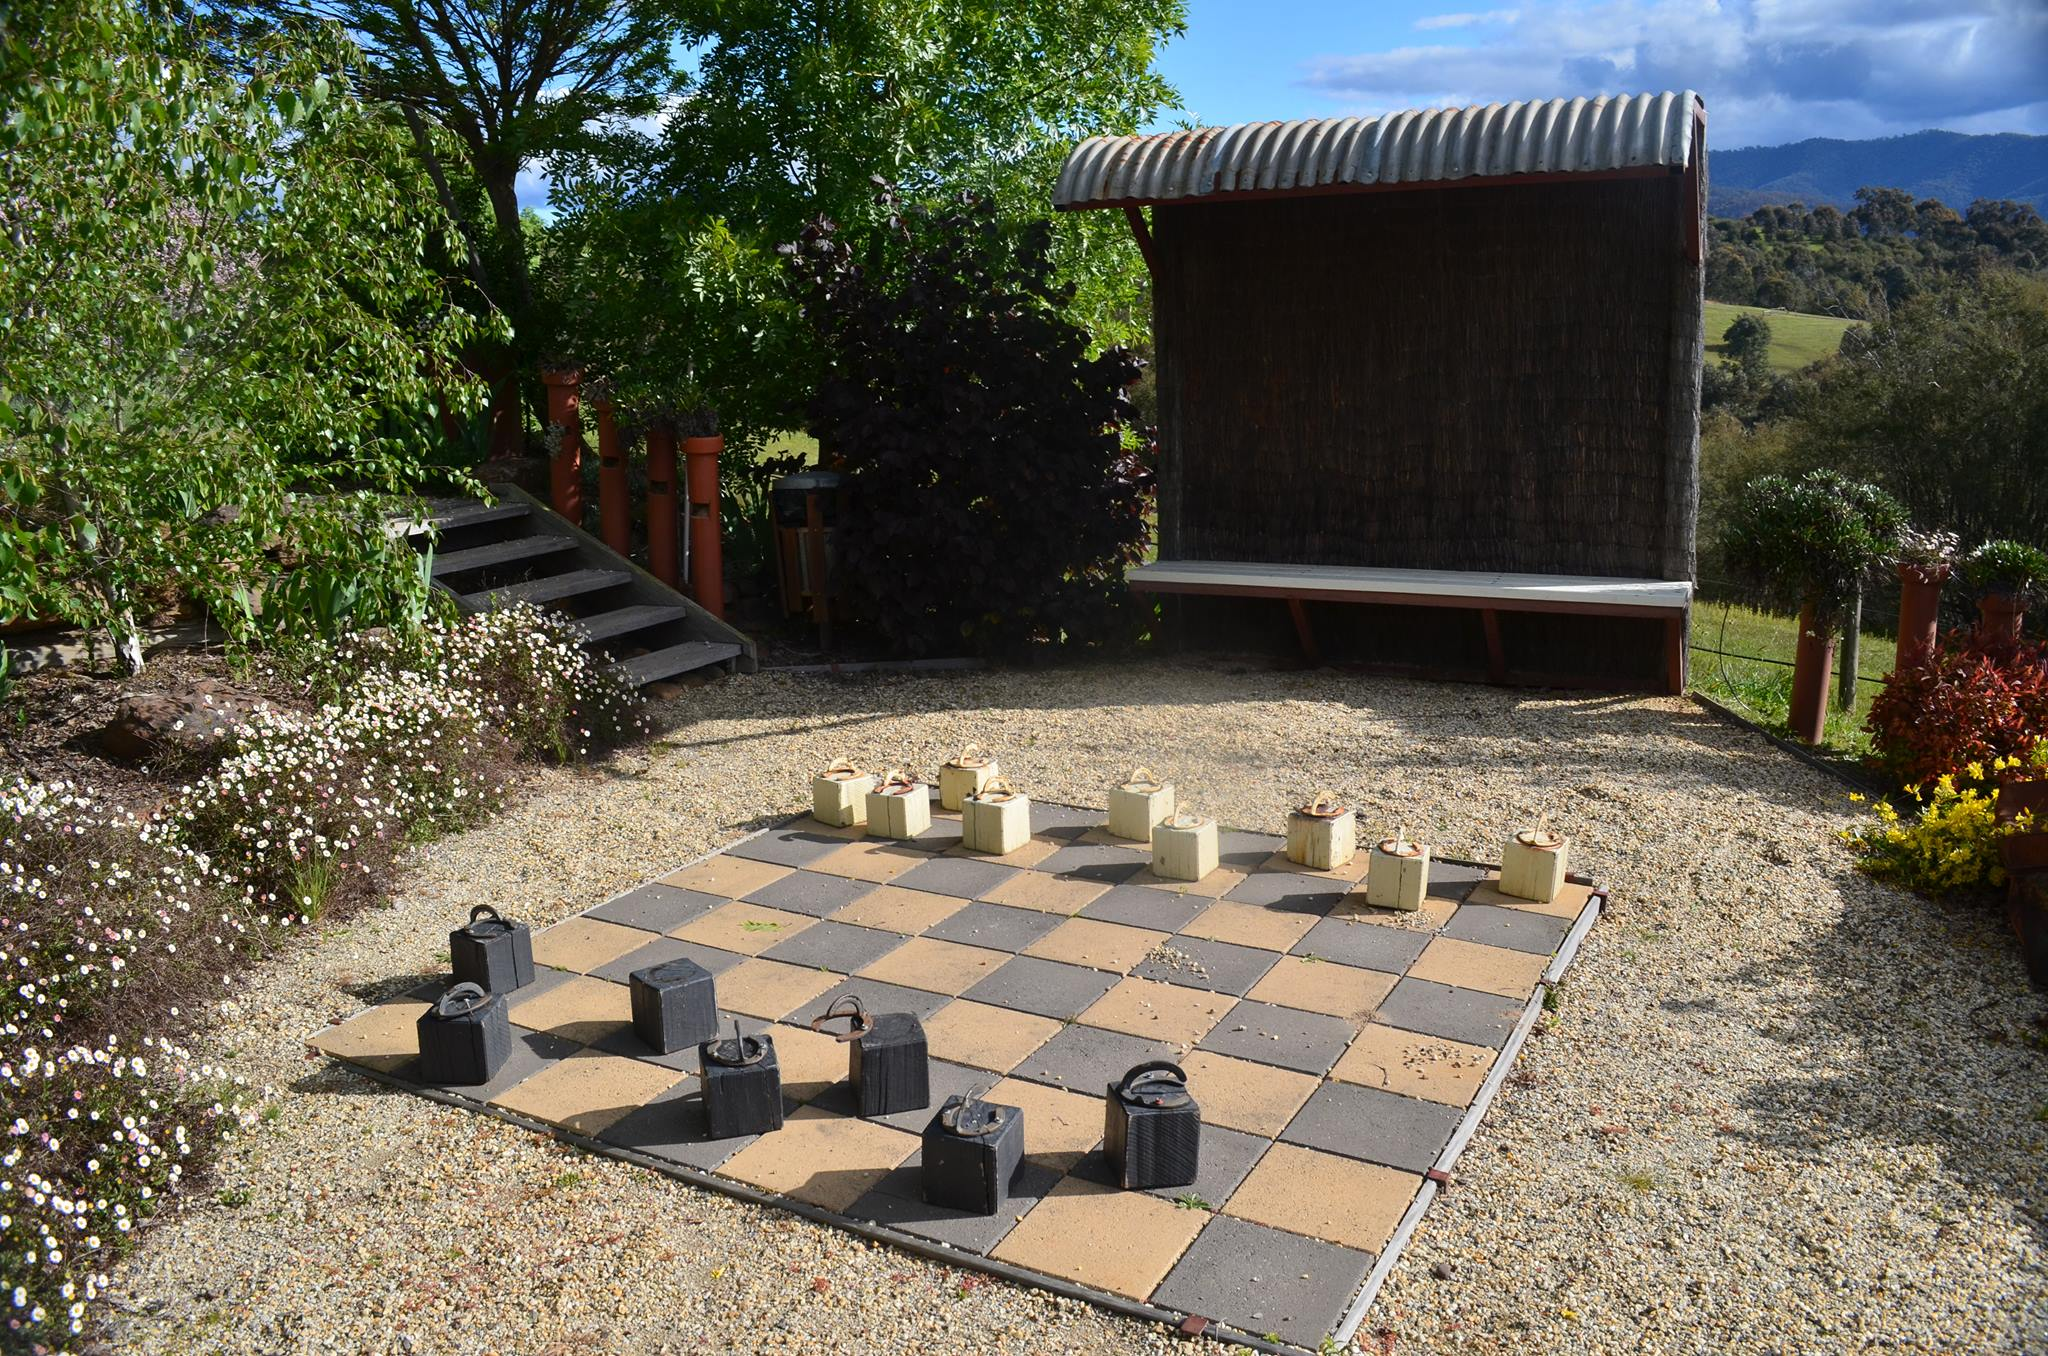 Giant Chess Board at Howqua Resort